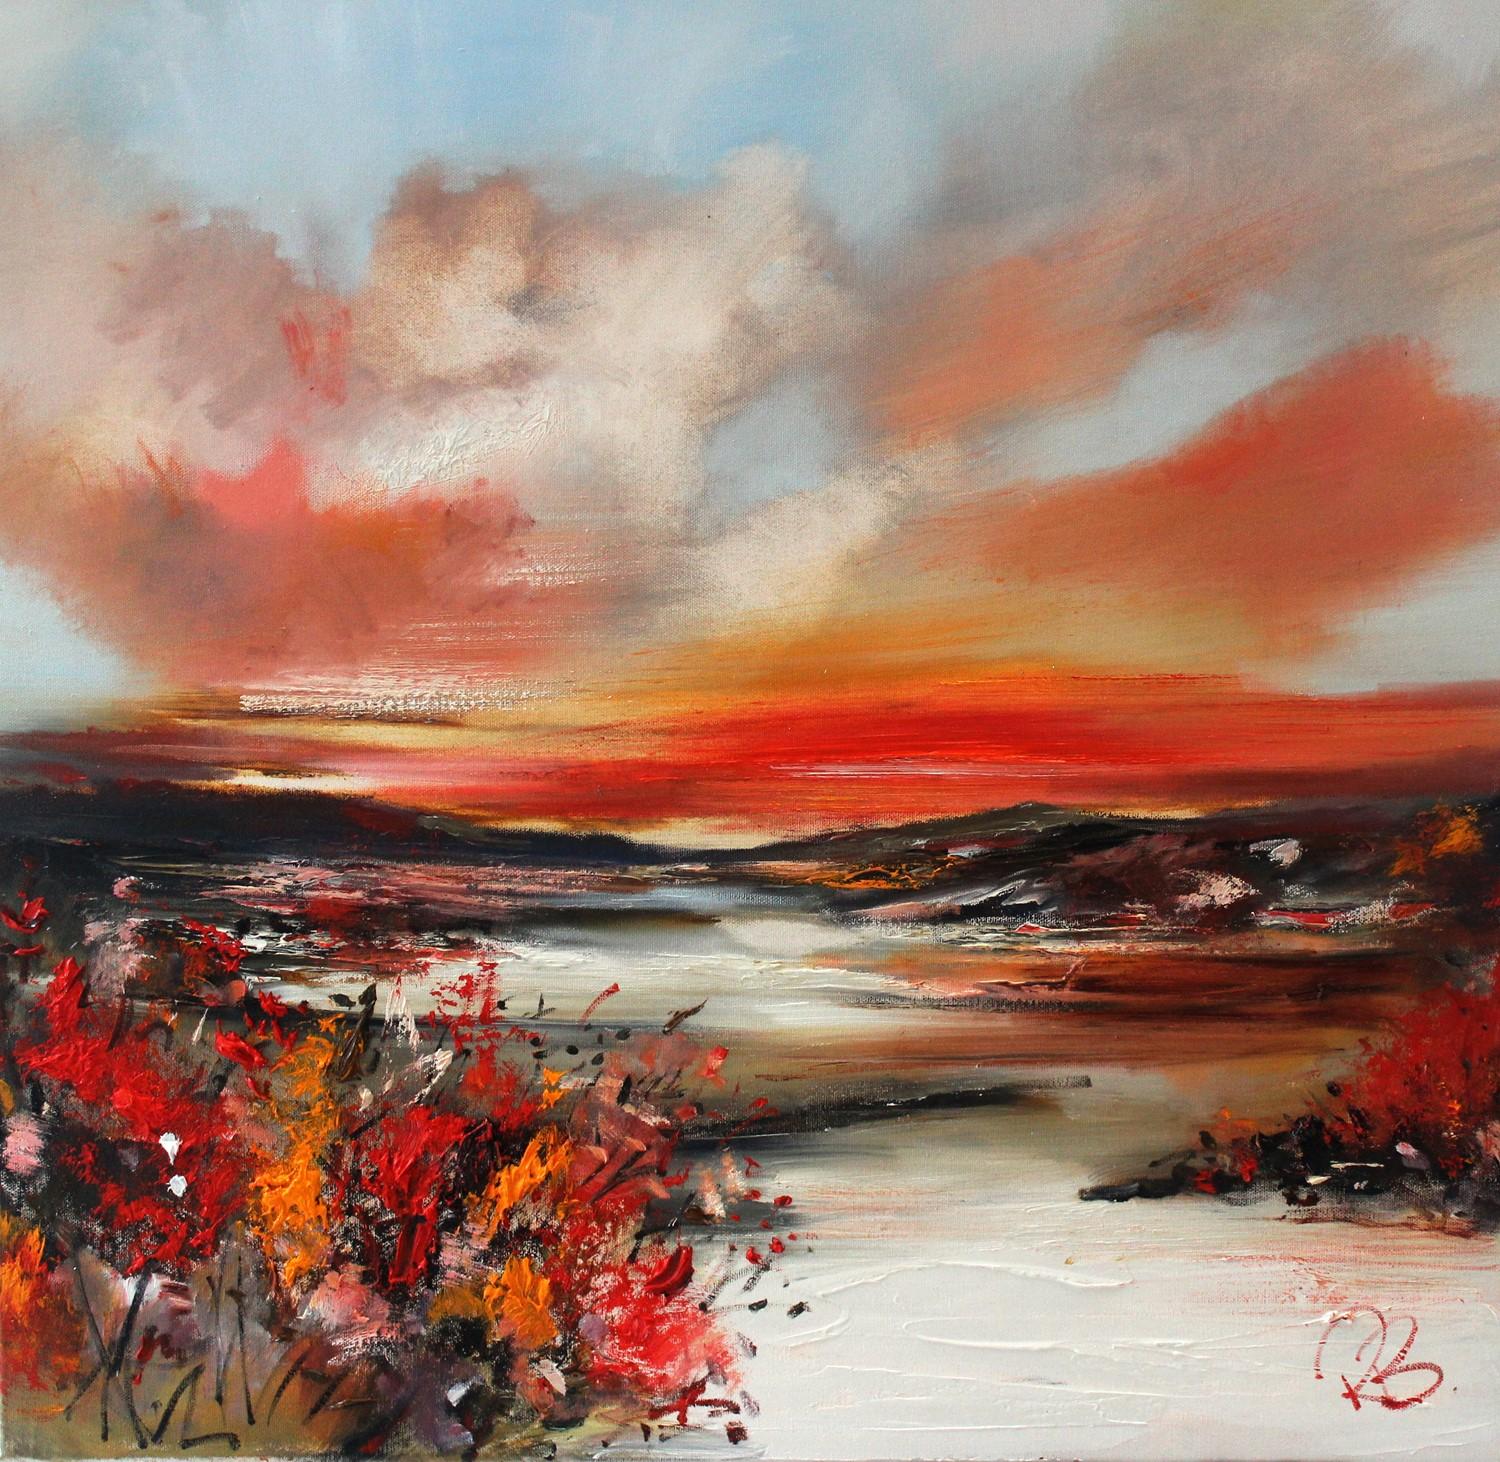 'Mid Autumn' by artist Rosanne Barr